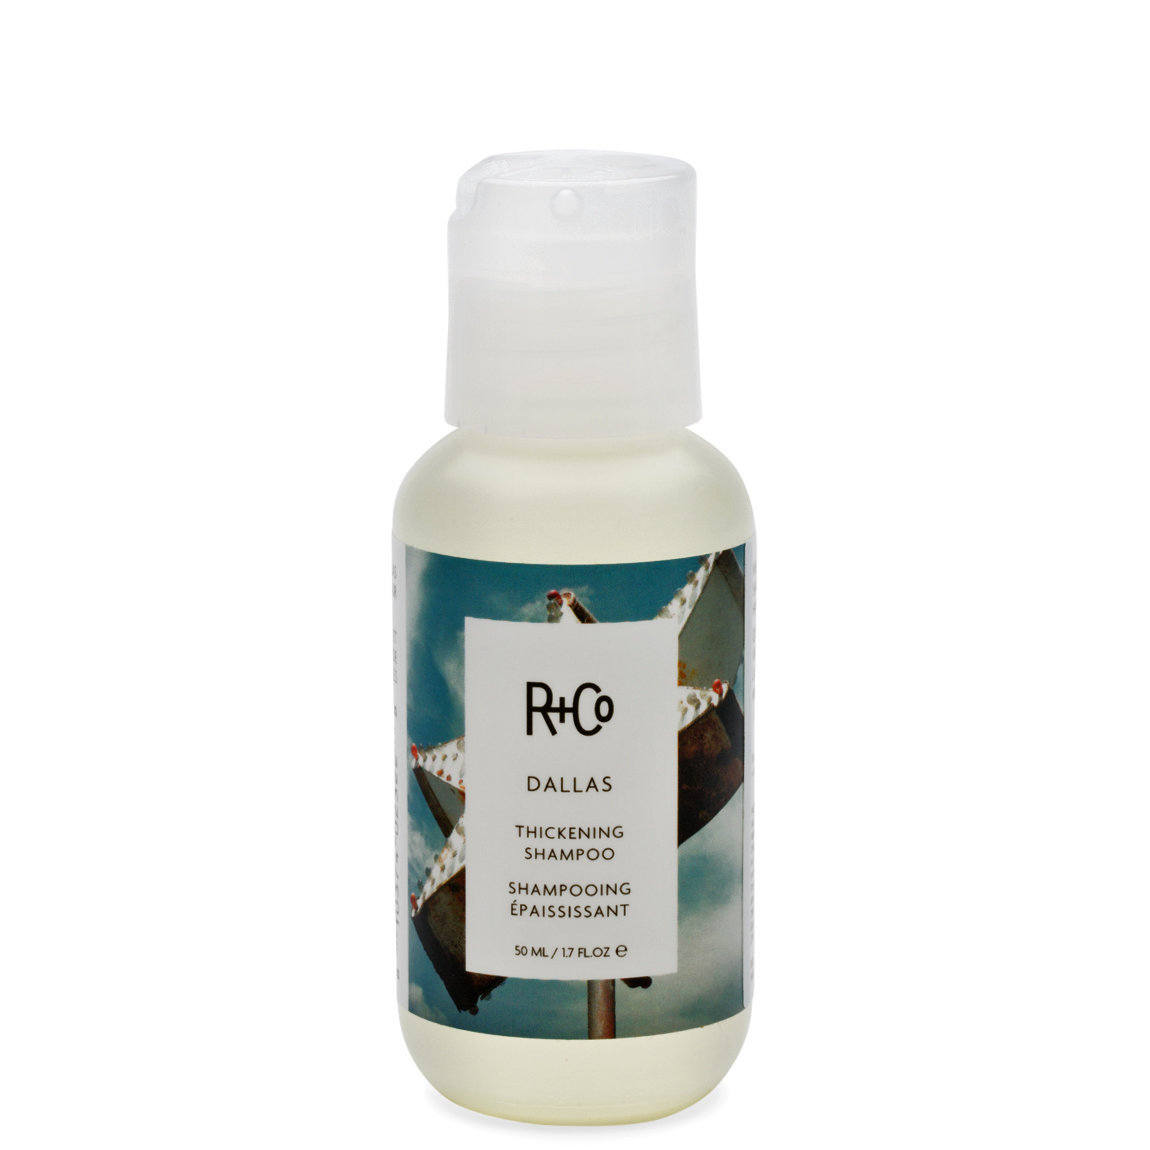 R+Co Dallas Thickening Shampoo 1.7 oz product smear.